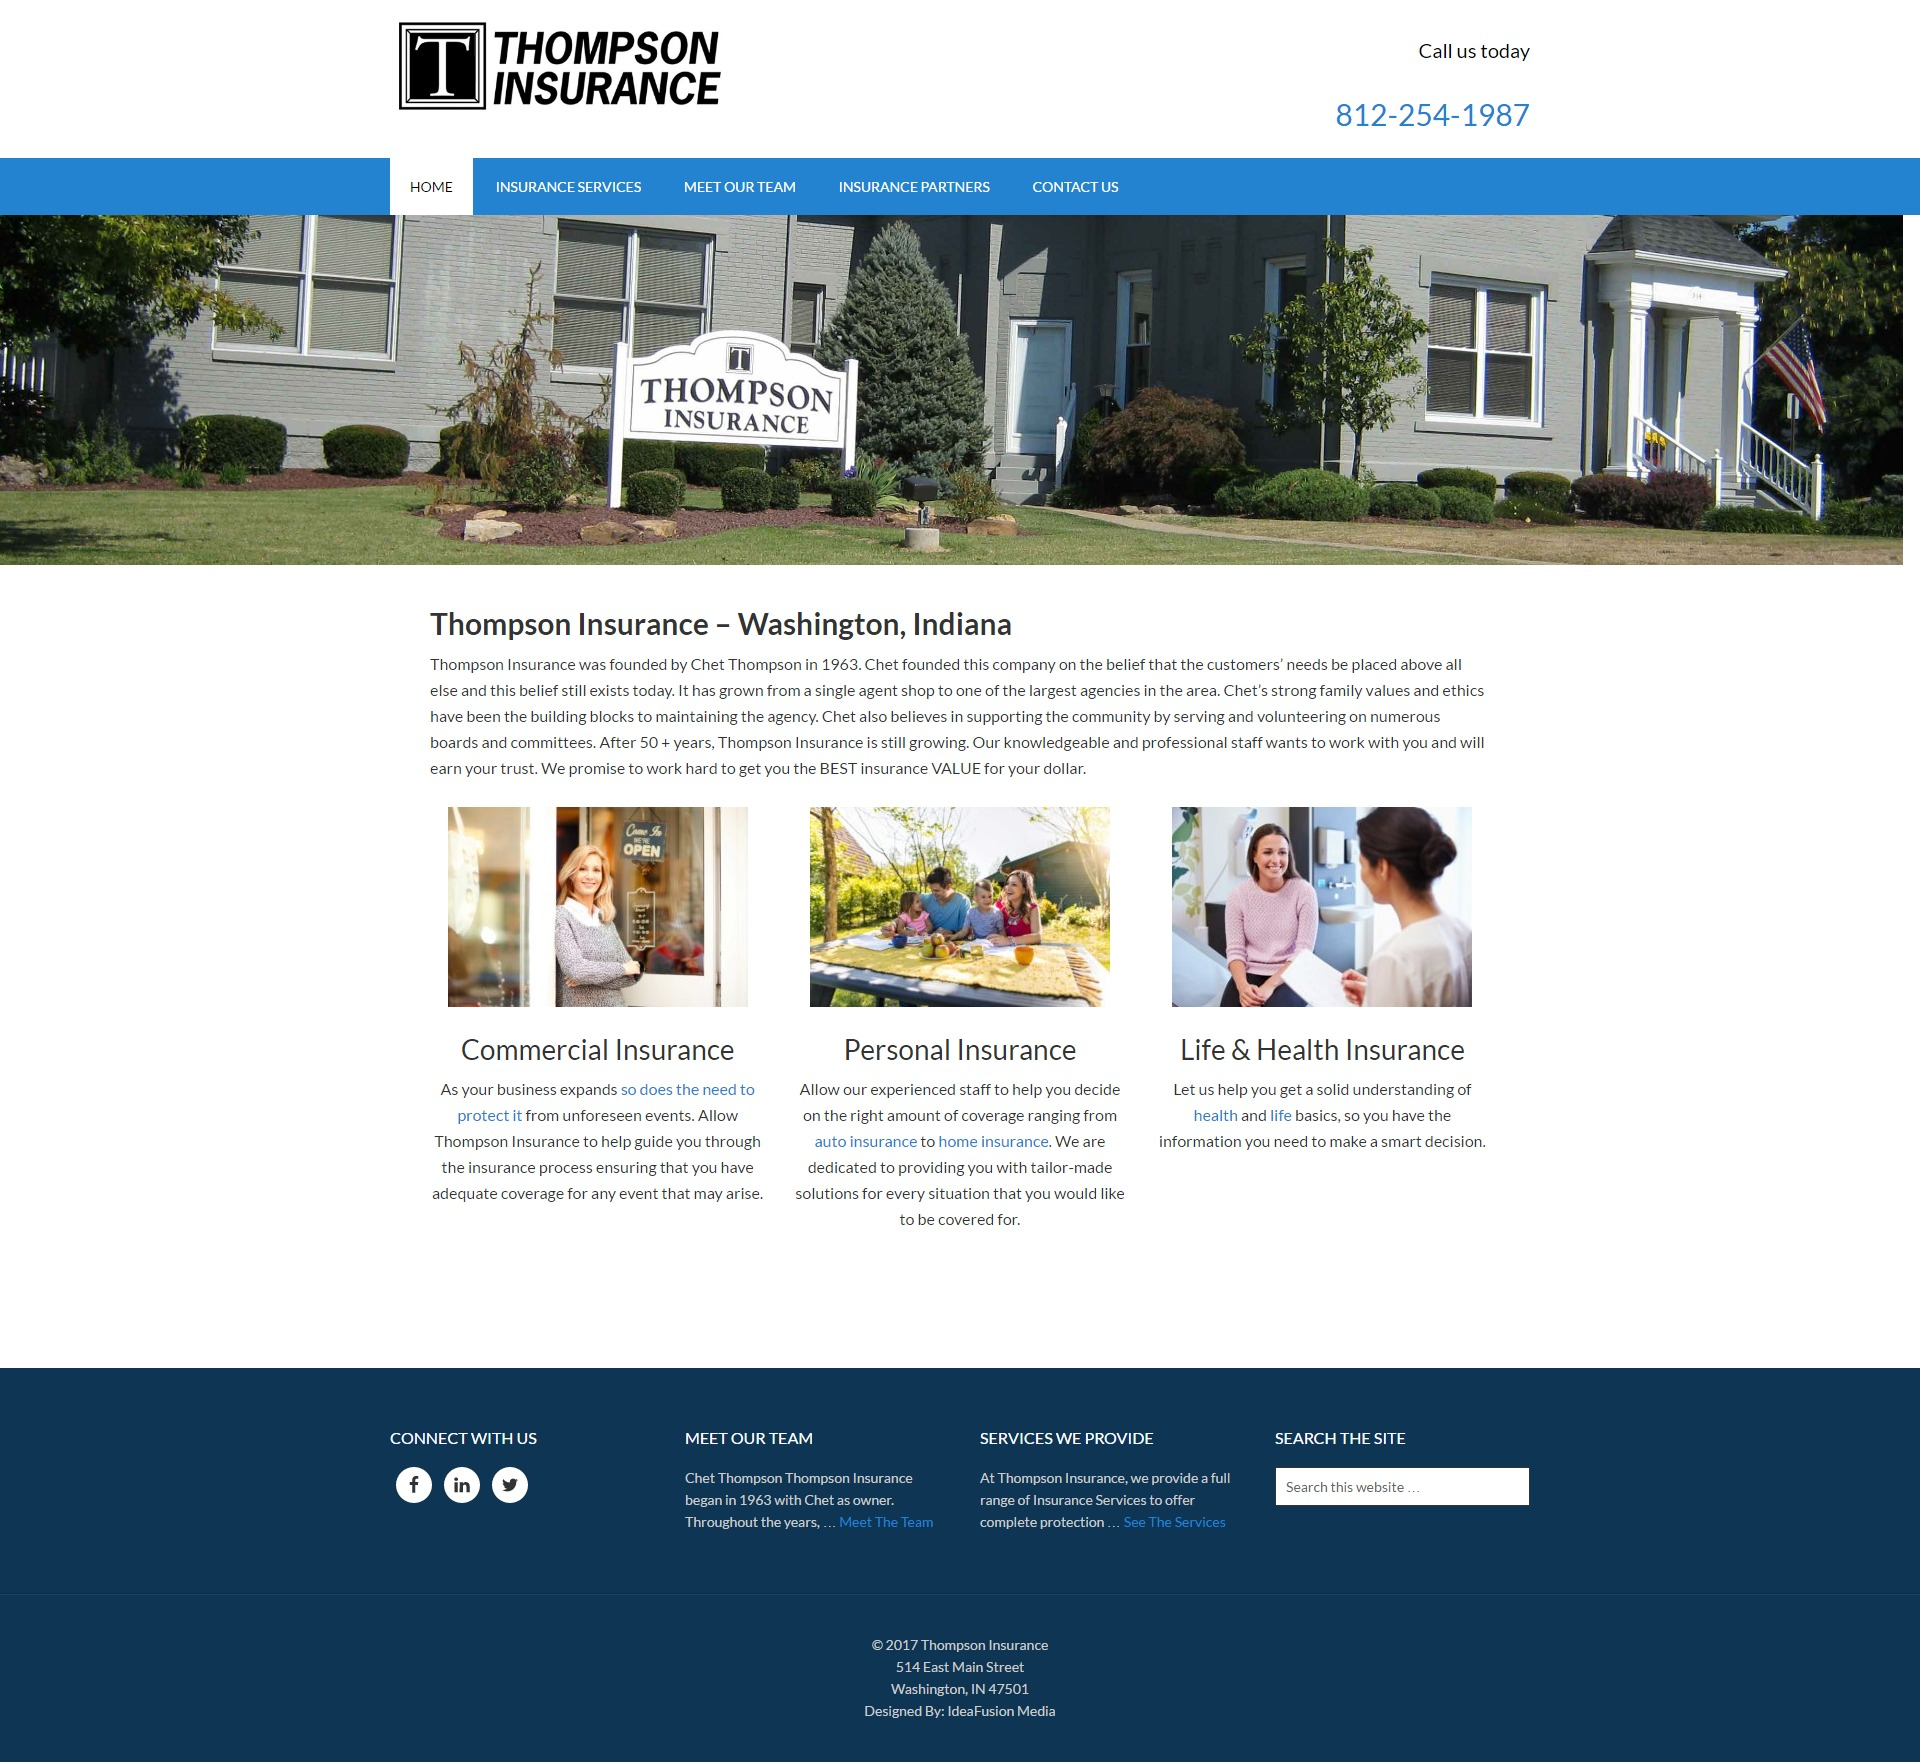 Thompson Insurance Web Site Redesign Screenshot